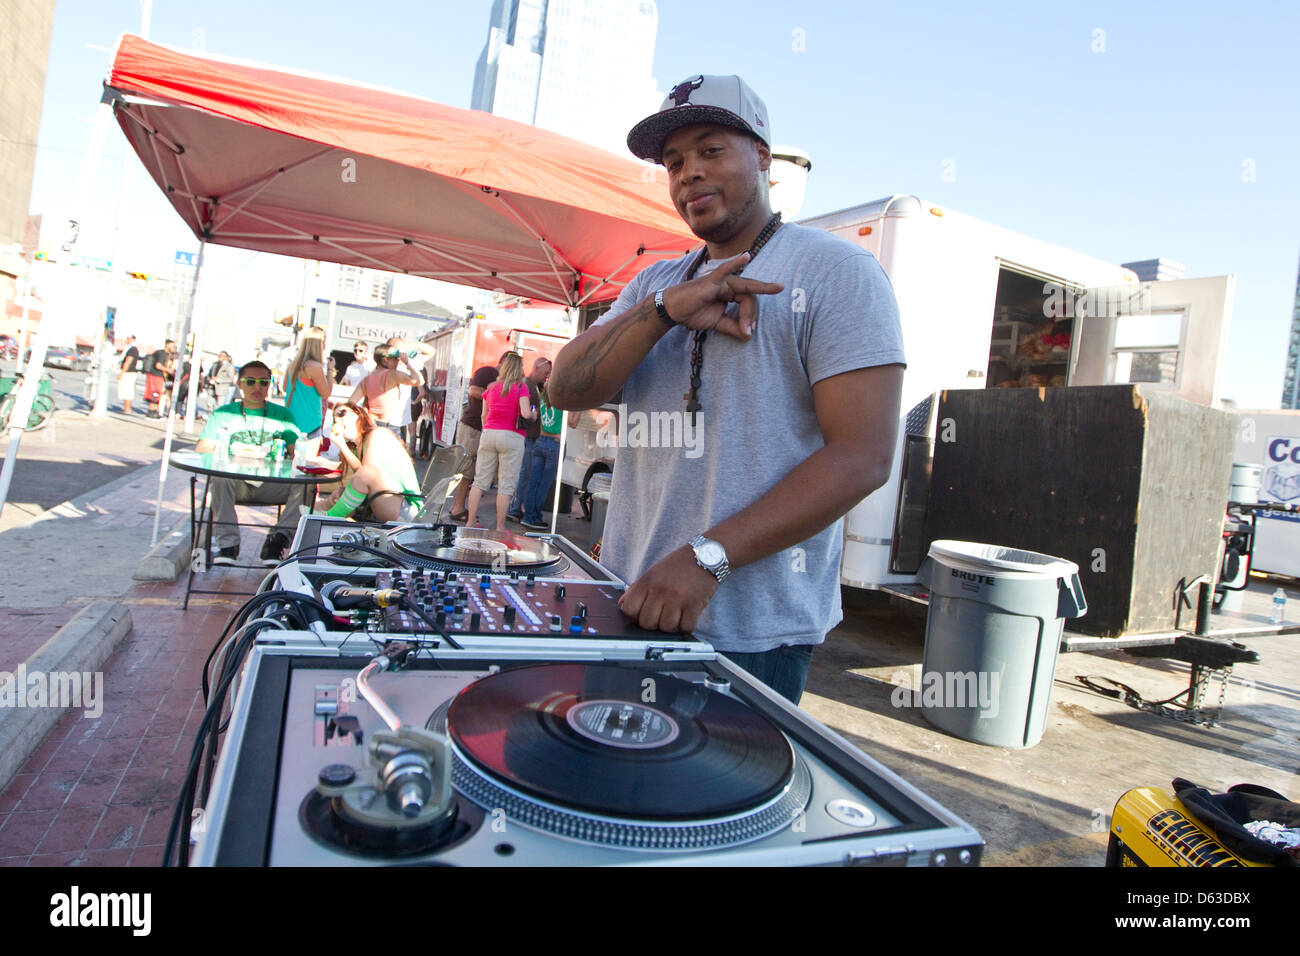 African-American DJ spins records and shows off his tattoo during the SXSW musical festival in Austin, Texas - Stock Image